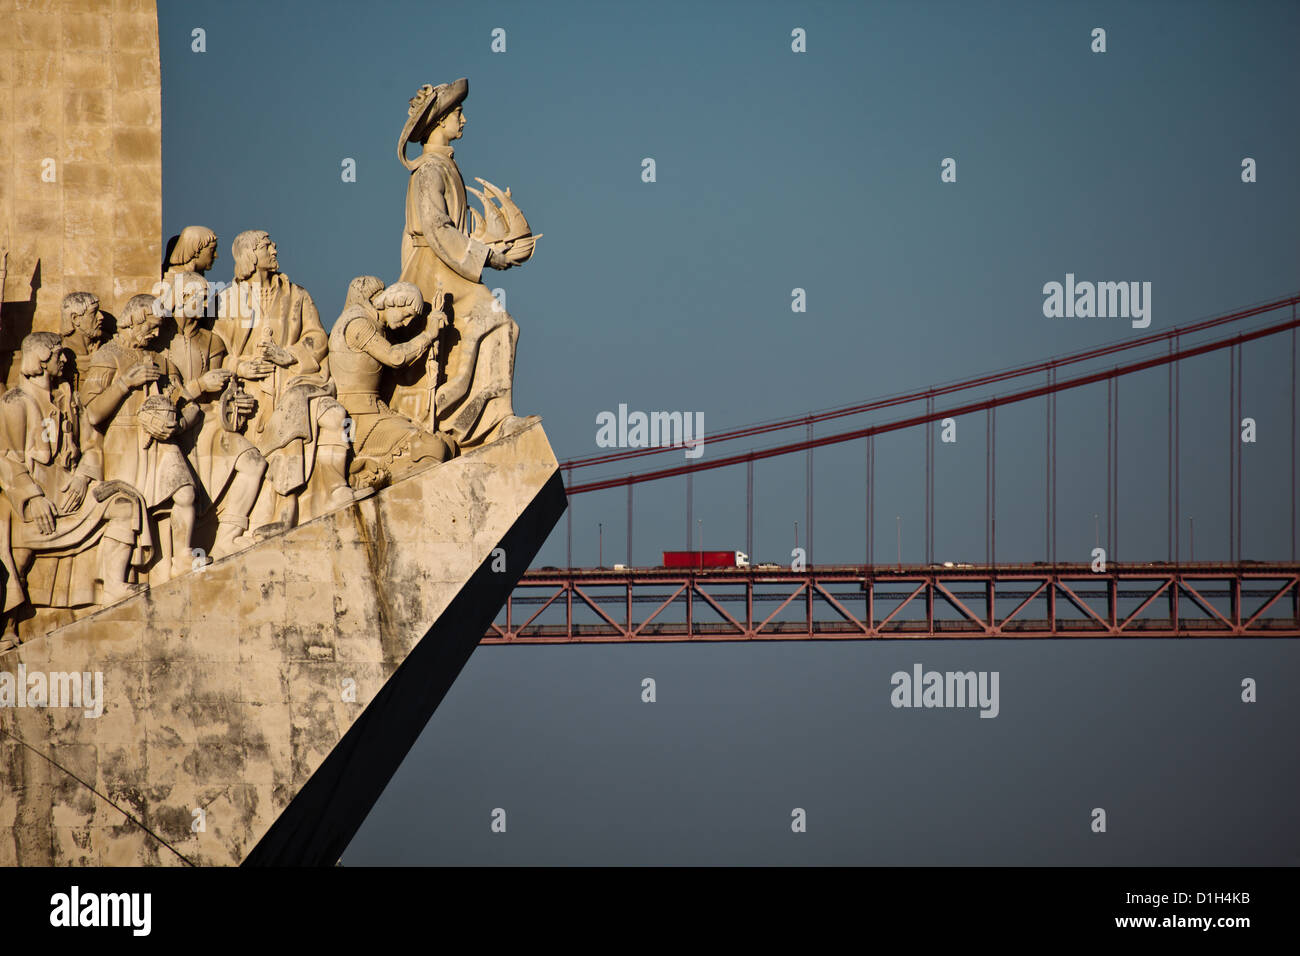 Closeup of Lisbon Portugal Monument to Discoveries explorers carved stone statues with the 25th of April bridge - Stock Image